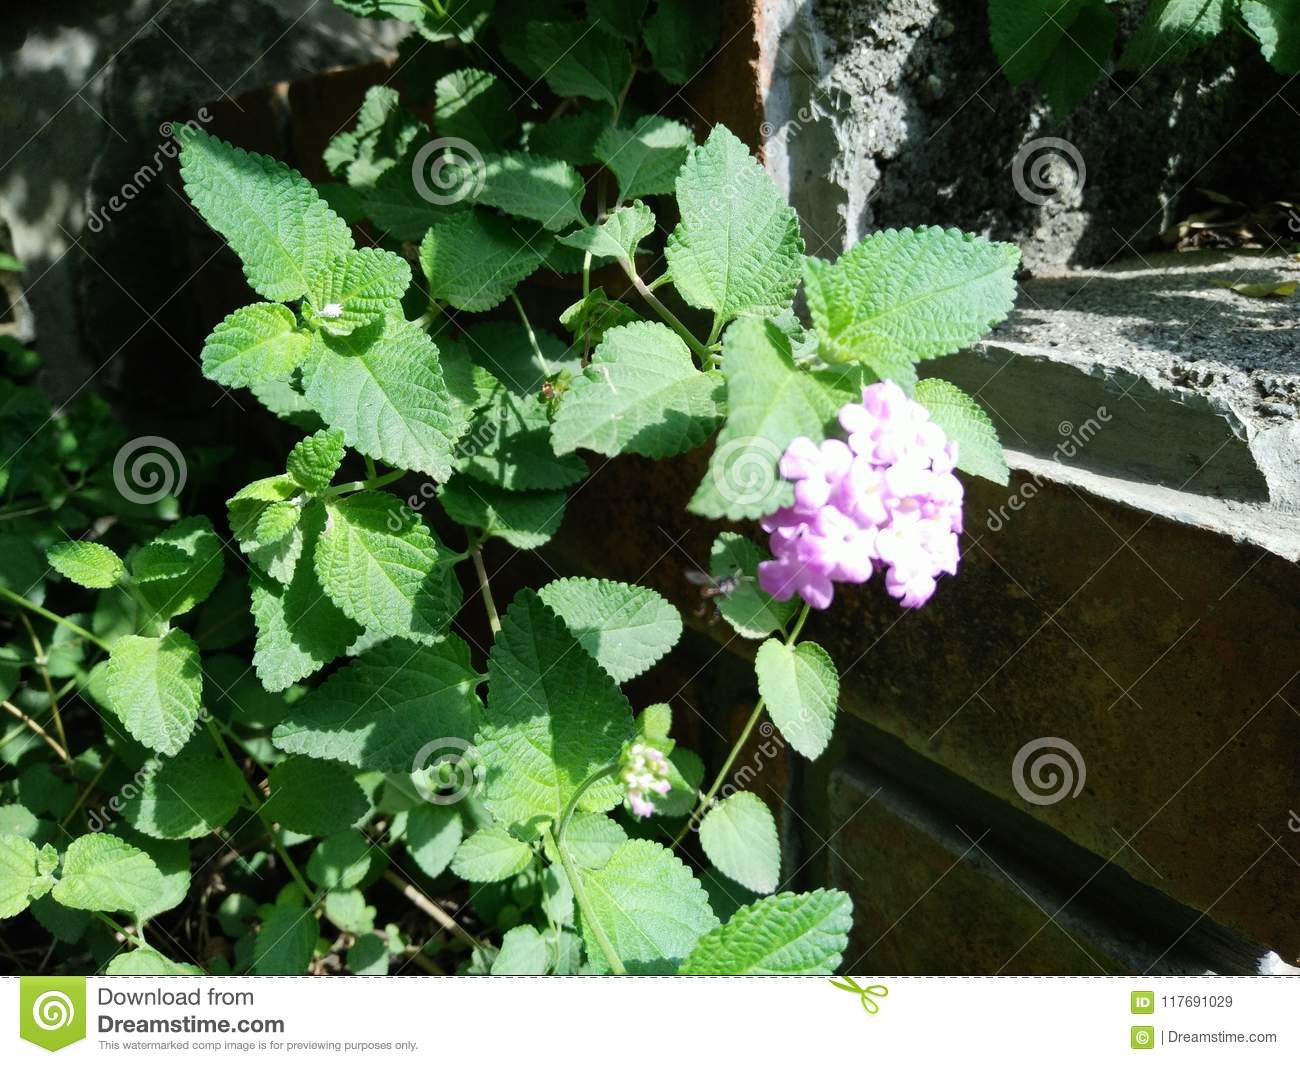 Green Plants In Garden With White Flowers Stock Image Image Of